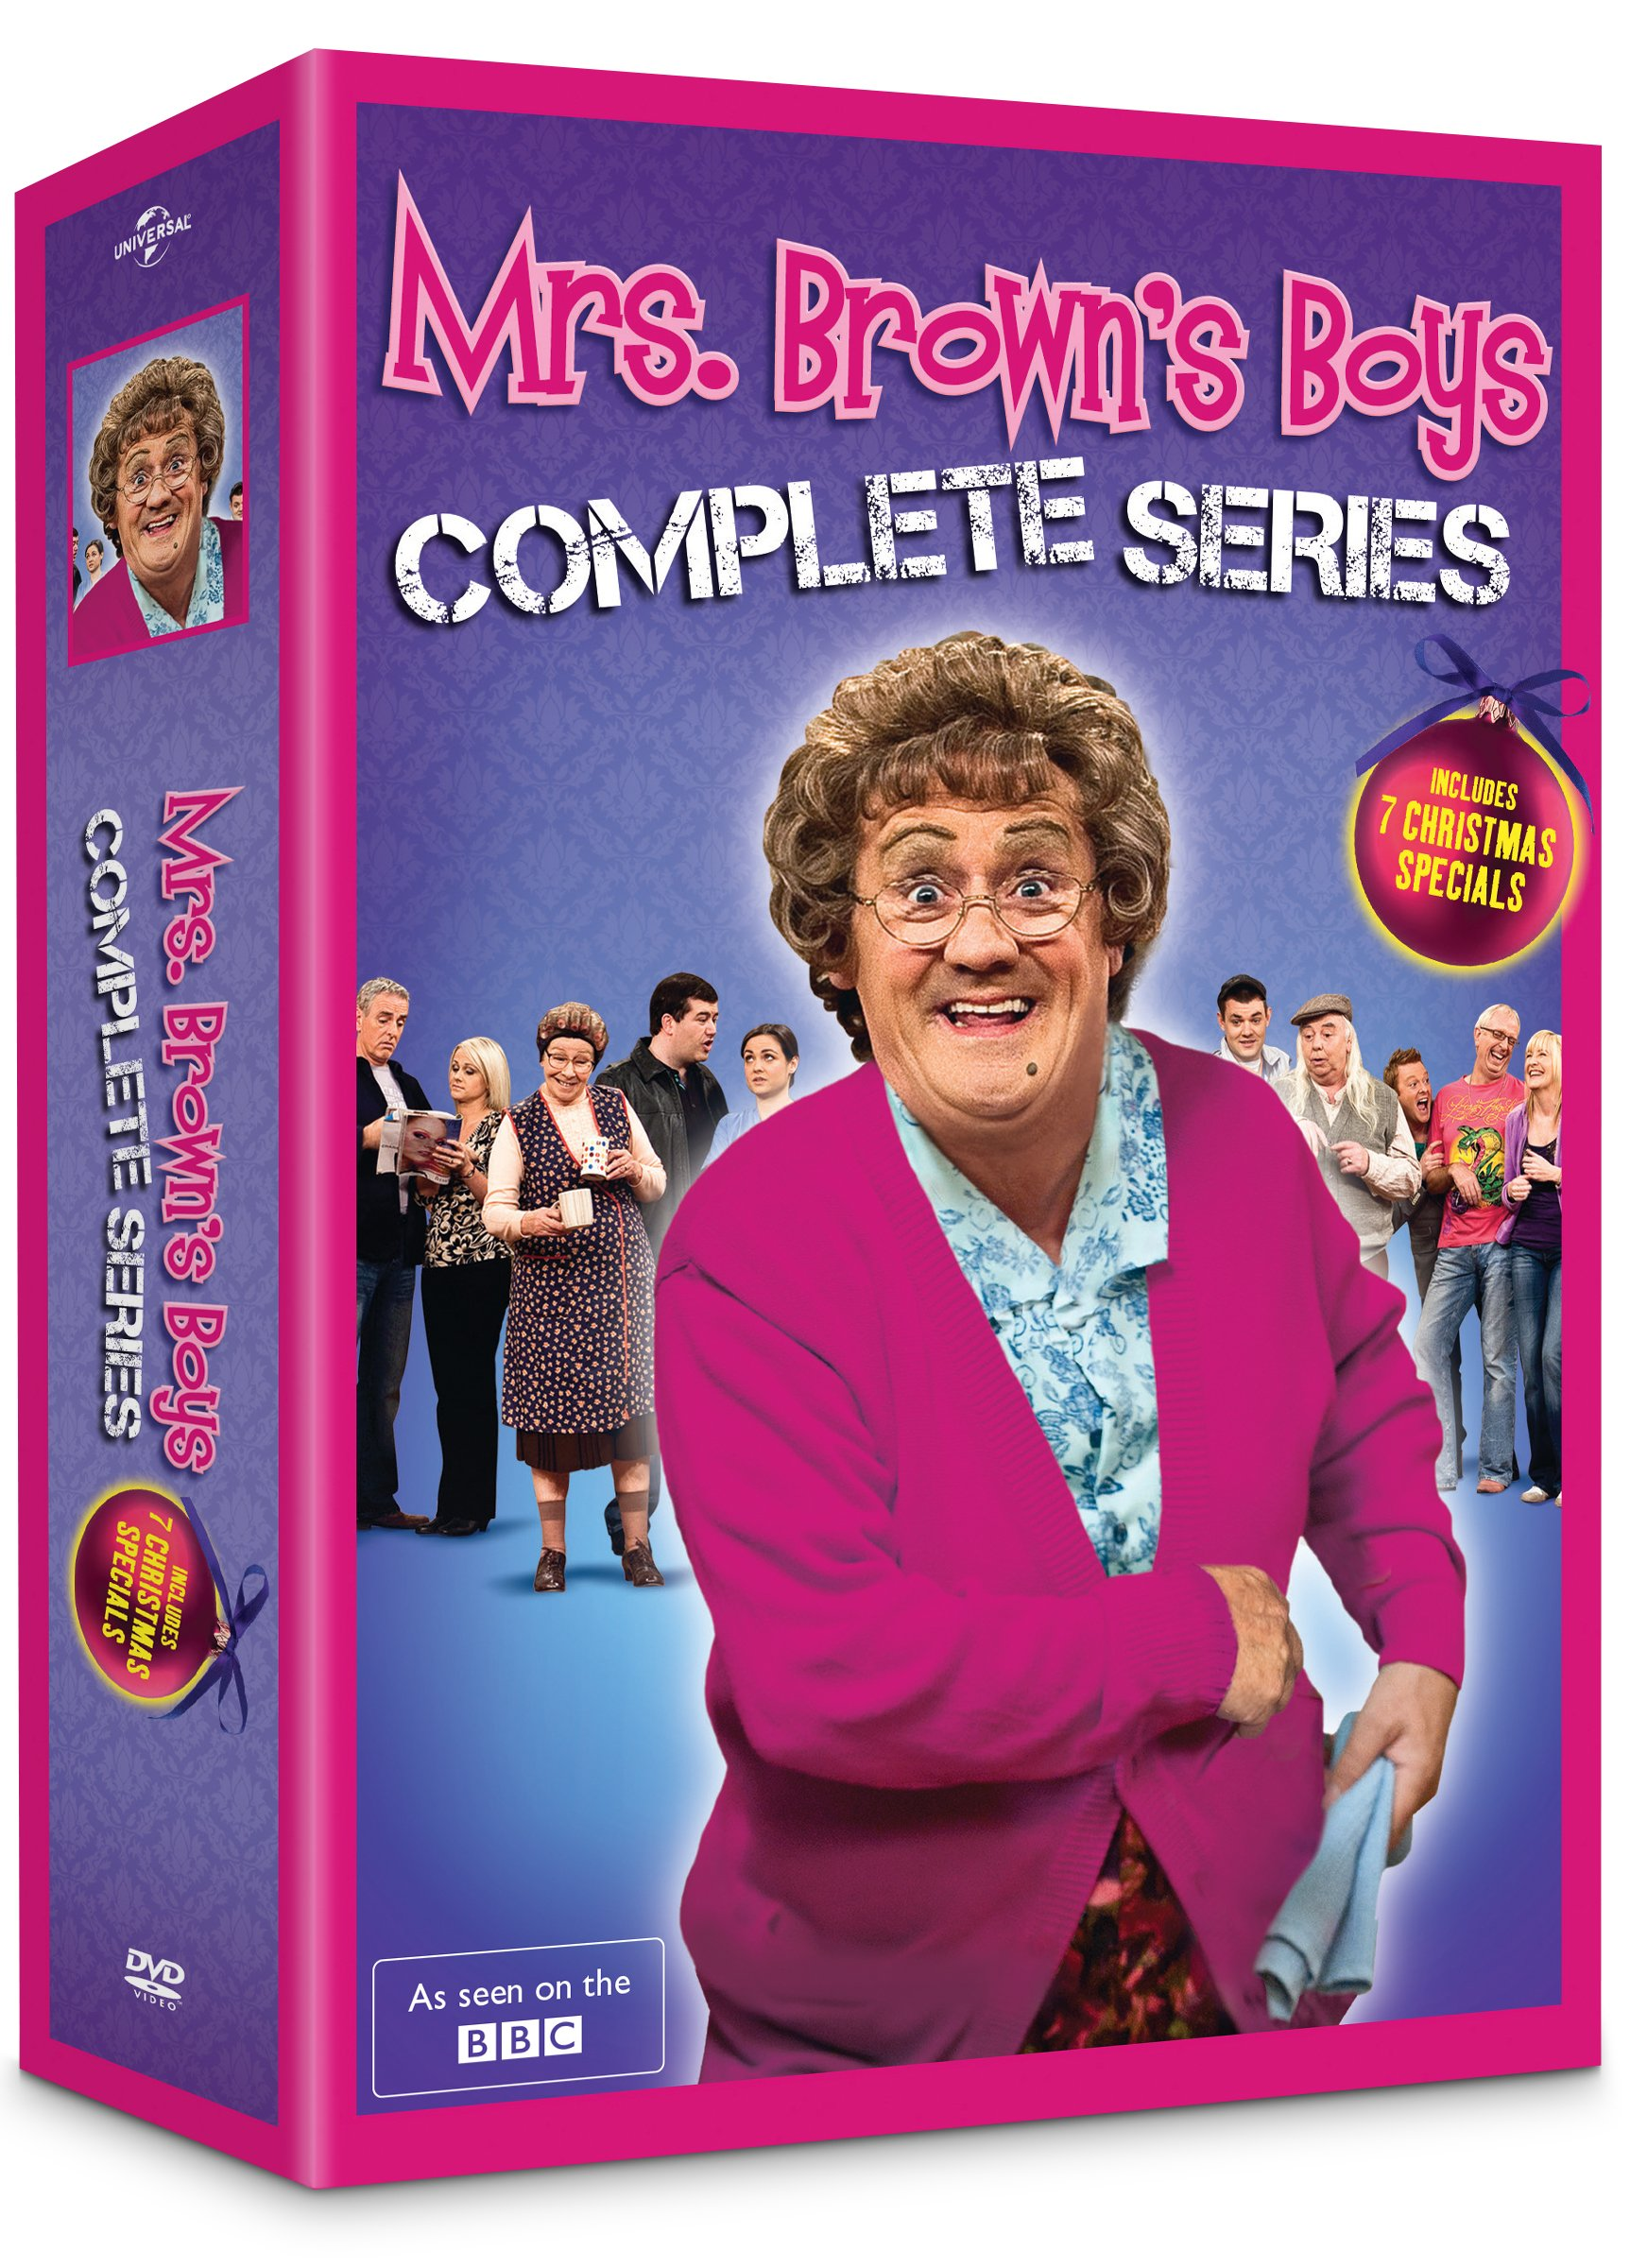 Mrs. Brown's Boys: Complete Series by Universal Studios Home Video